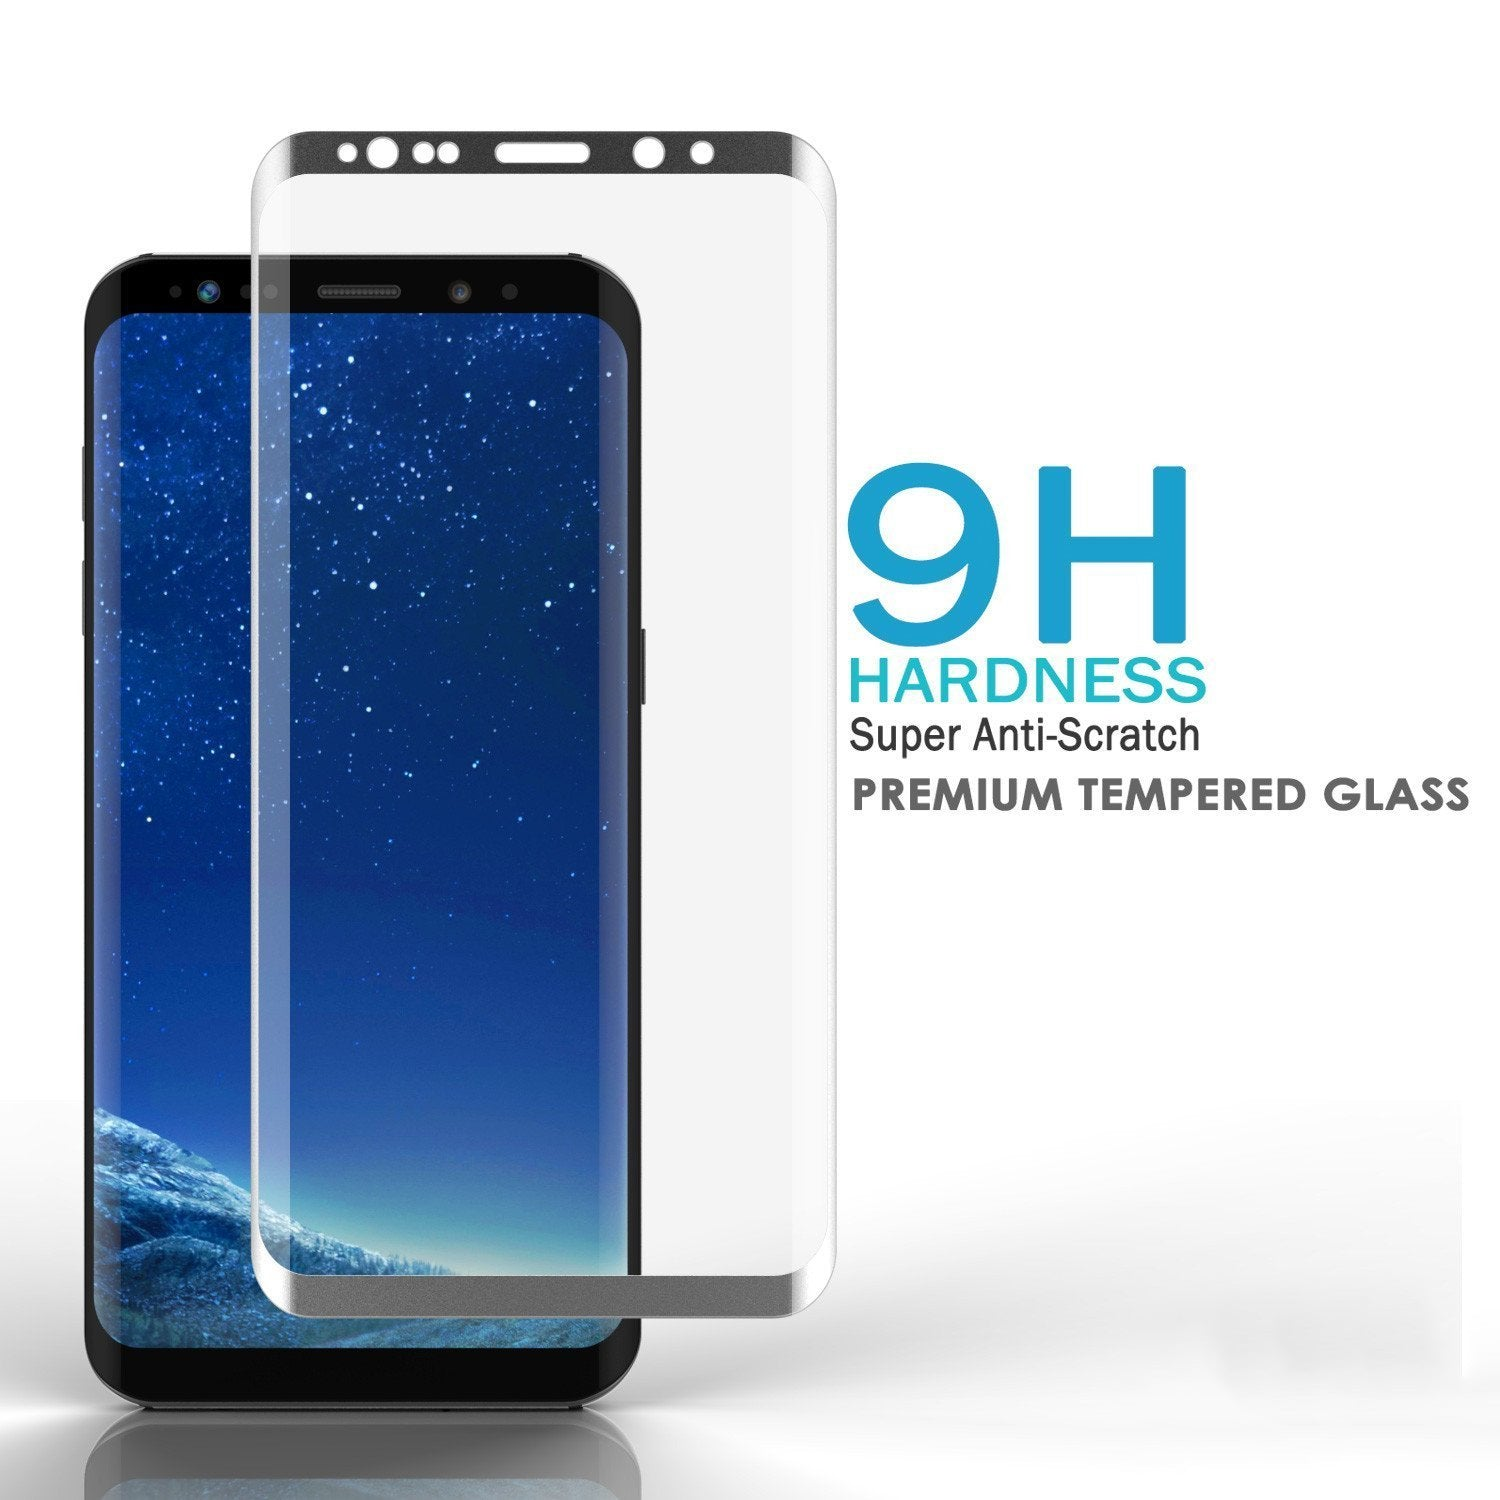 Galaxy S8 Plus Punkcase SHIELD Tempered Glass 0.33mm Thick 9H, Silver